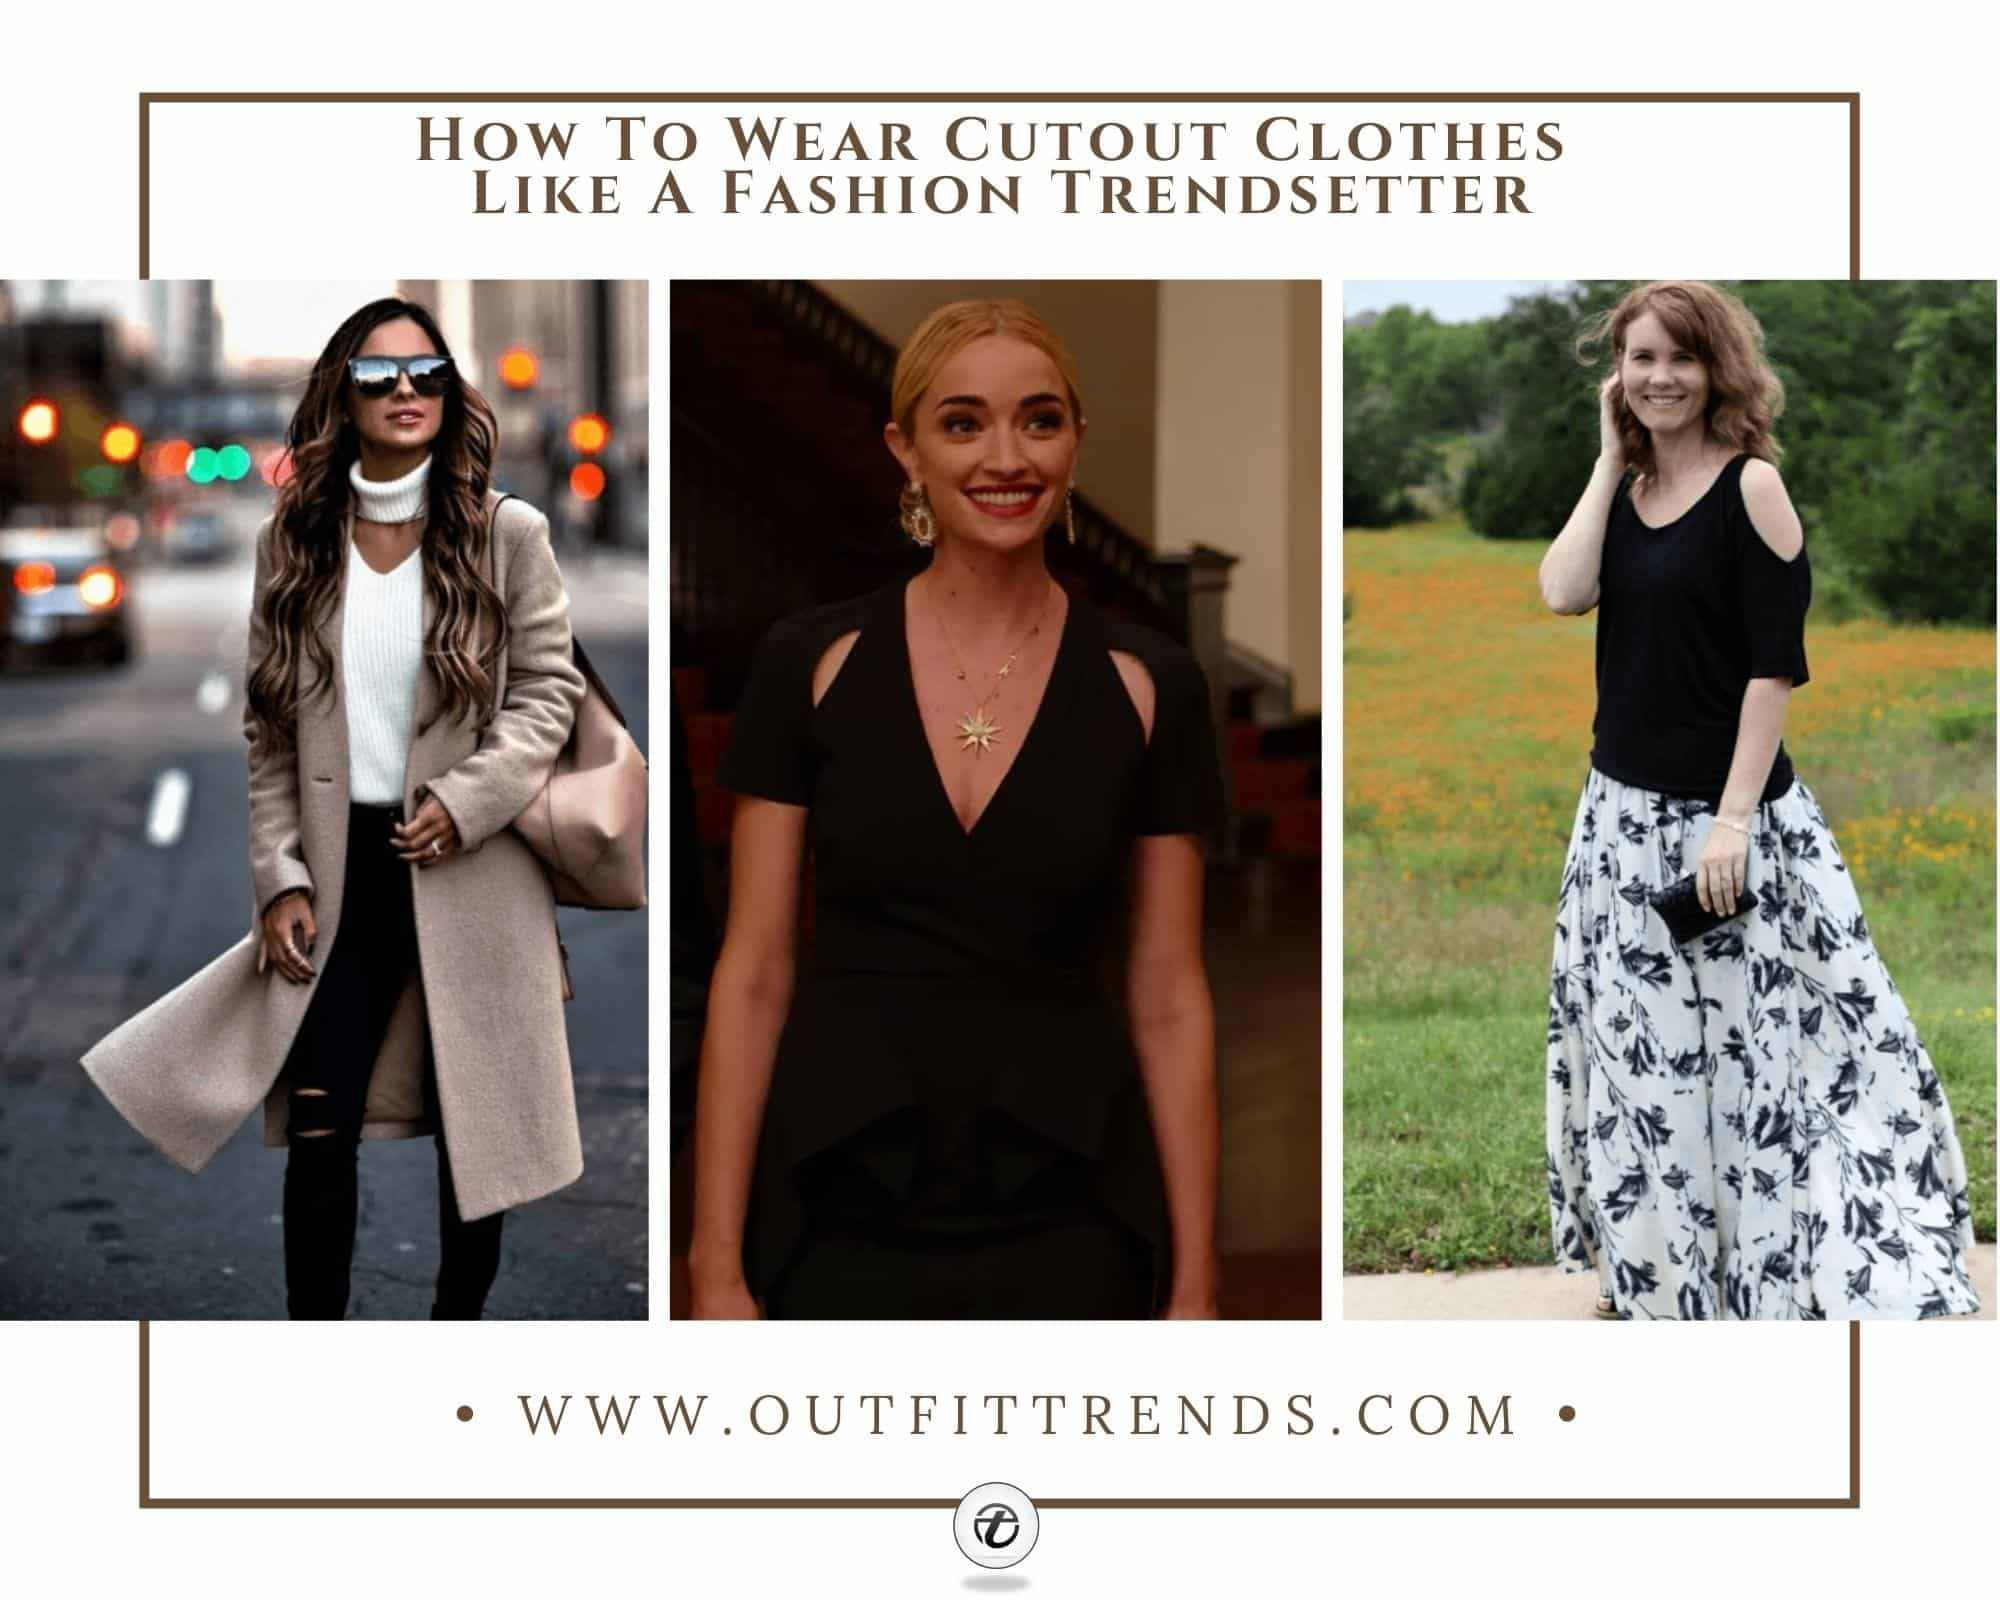 21 Best Cutout Dresses 2021 & Tips How to wear Cutout Clothes